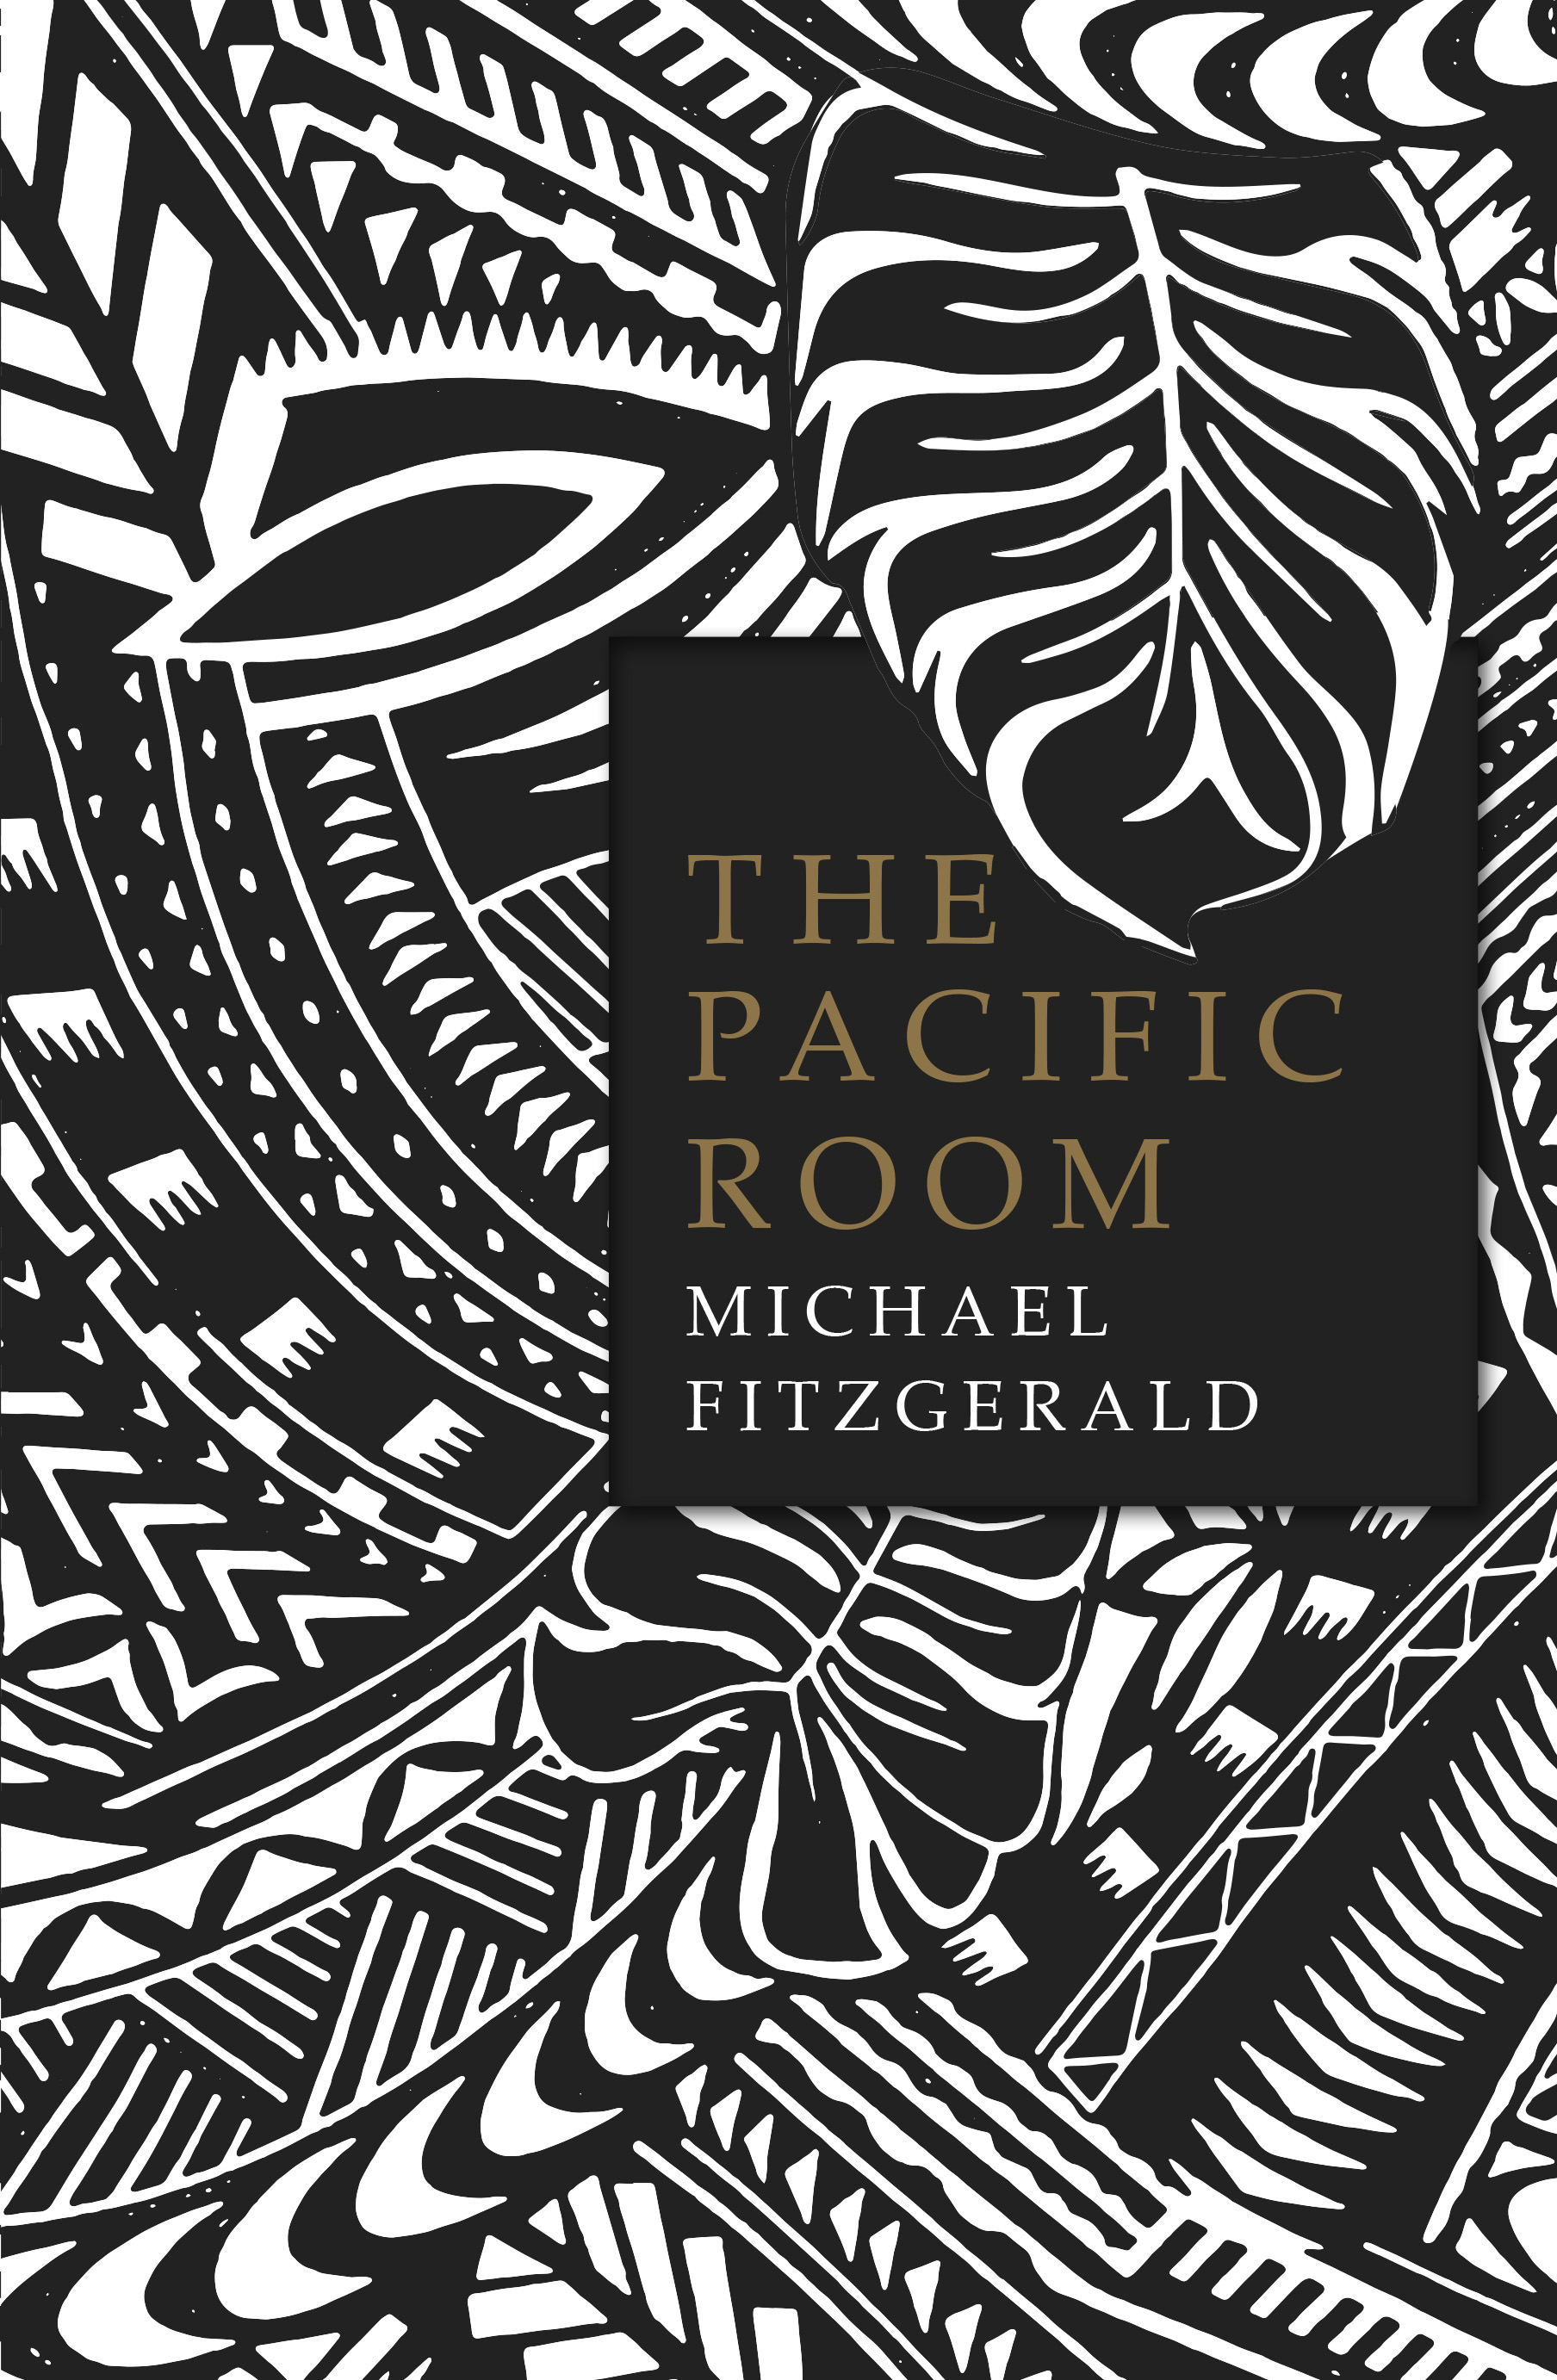 Launch of The Pacific Room